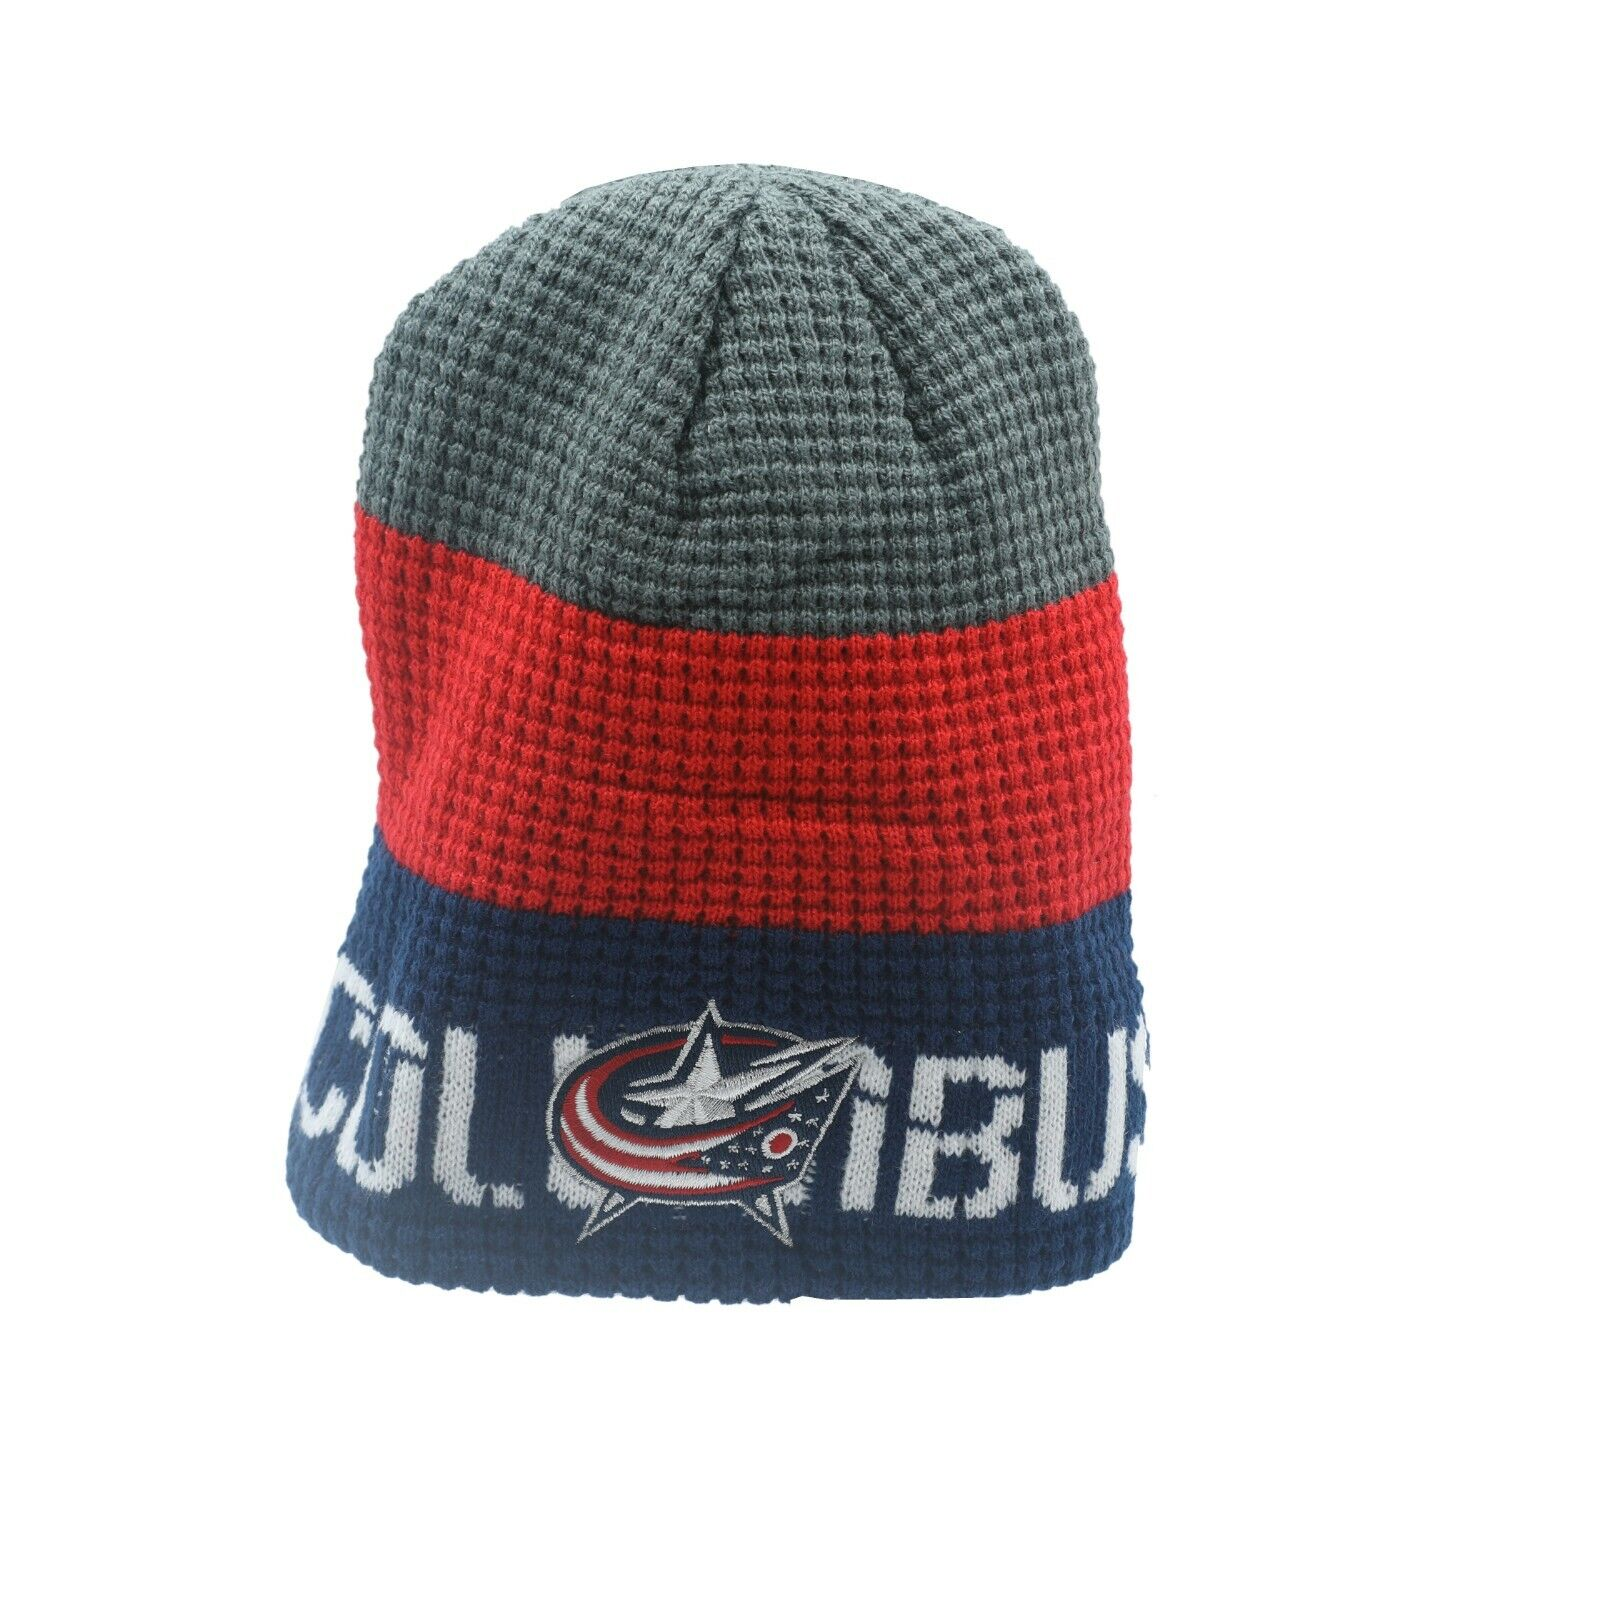 Columbus Blue Jackets NHL Reebok Youth Boys (8-20) Knit Winter Beanie New  Tags 4757c571dccb